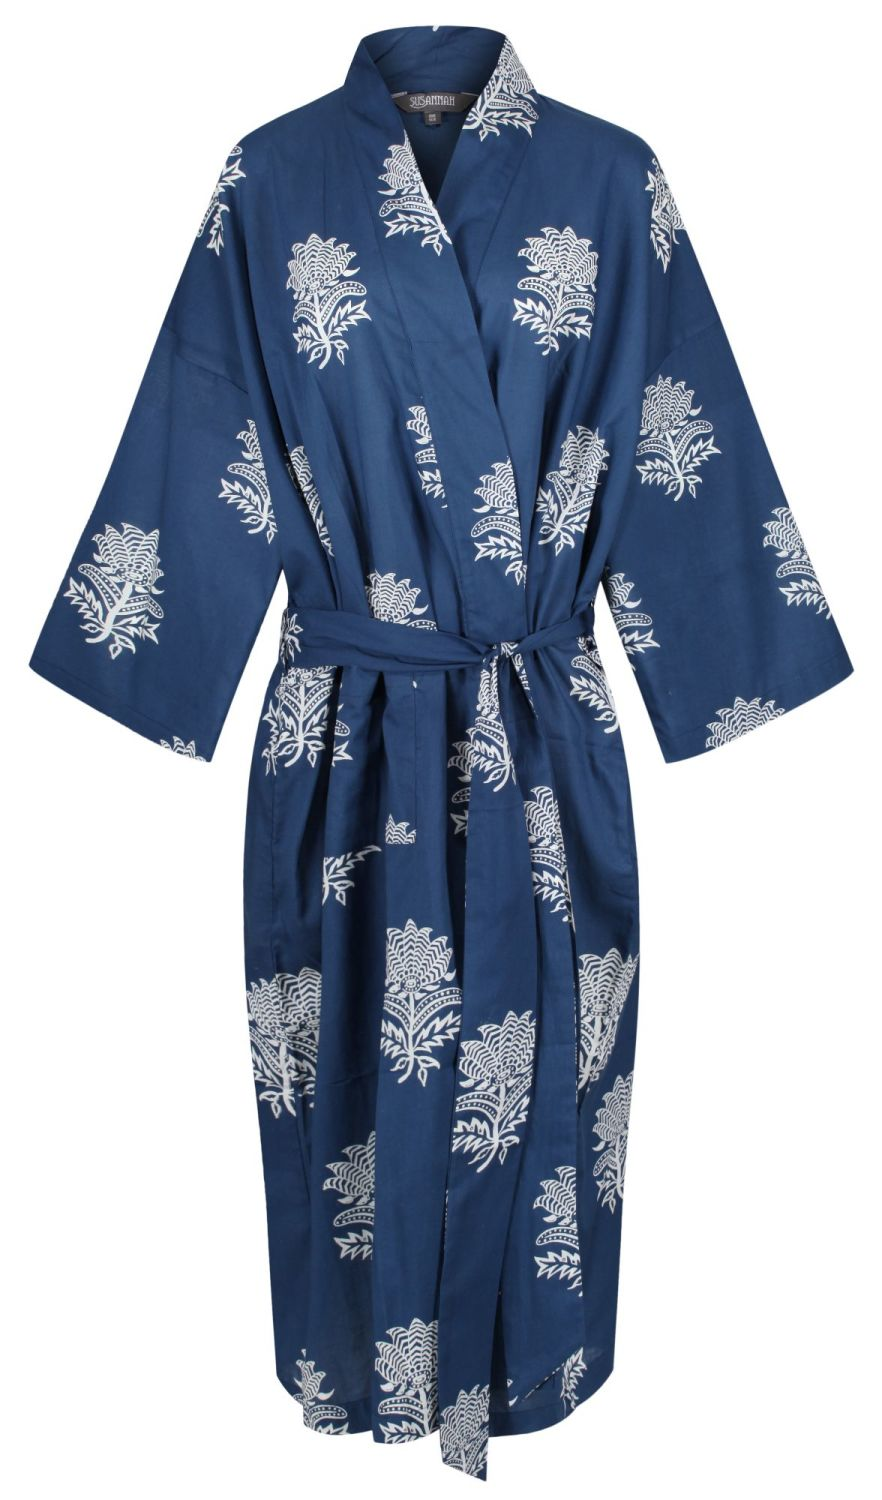 Kimono Dressing Gown - Tiger Flower White on Dark Blue - outlet